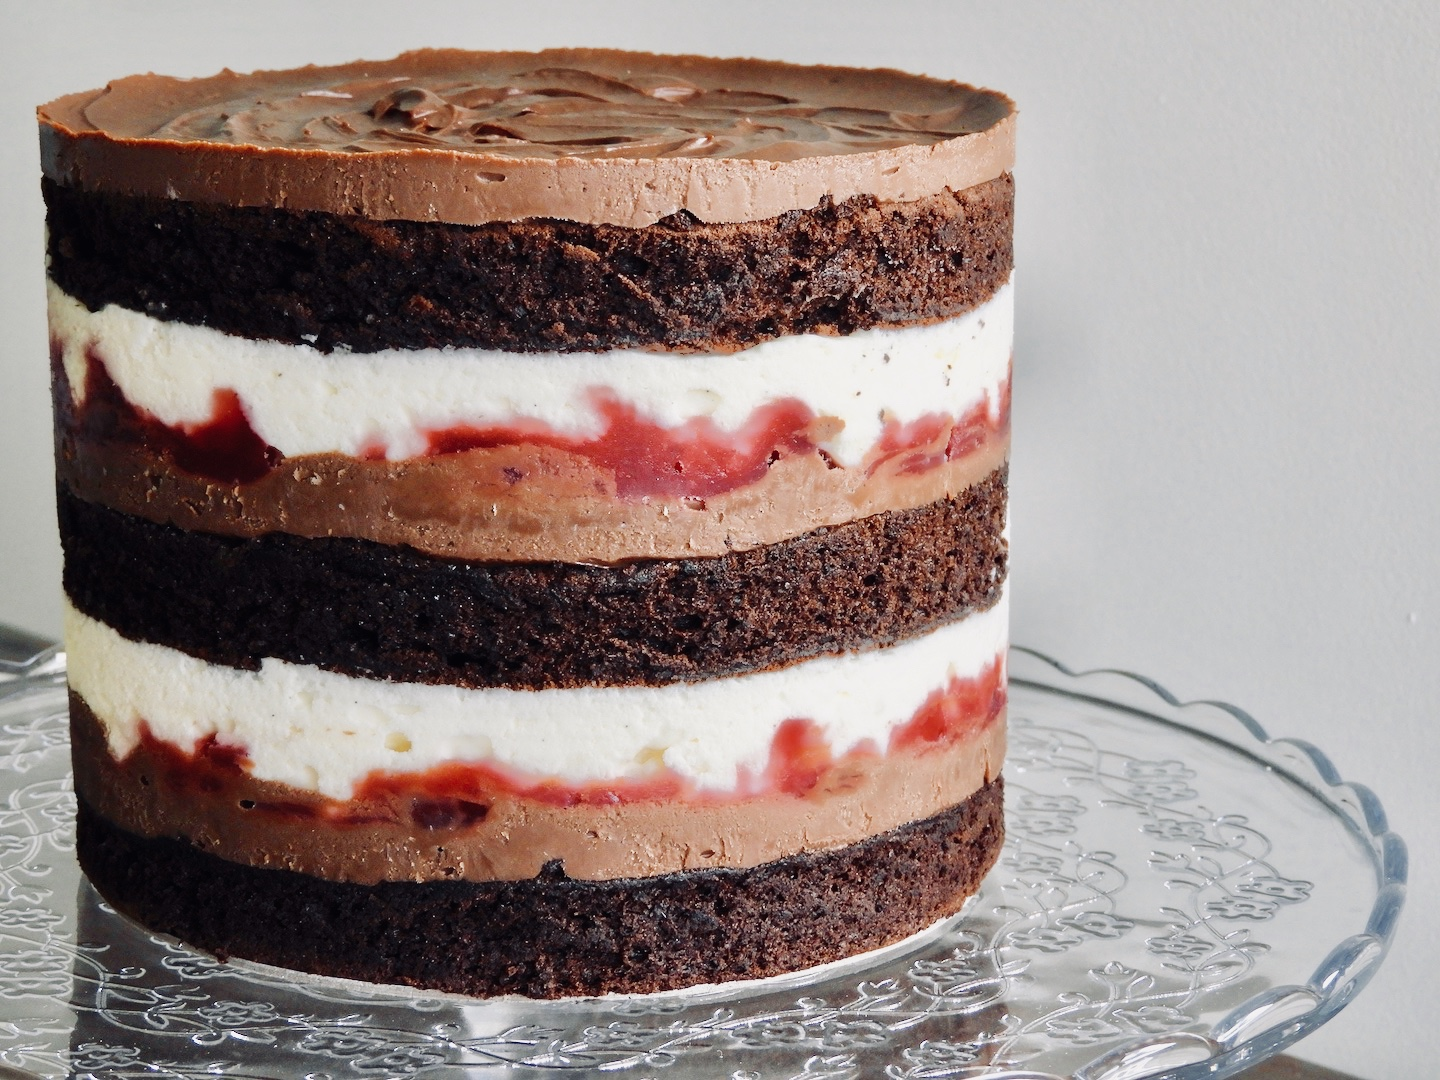 Layer cakes - For special occasions or an indulgent treat.Available in two sizes,16cm and 24cm.